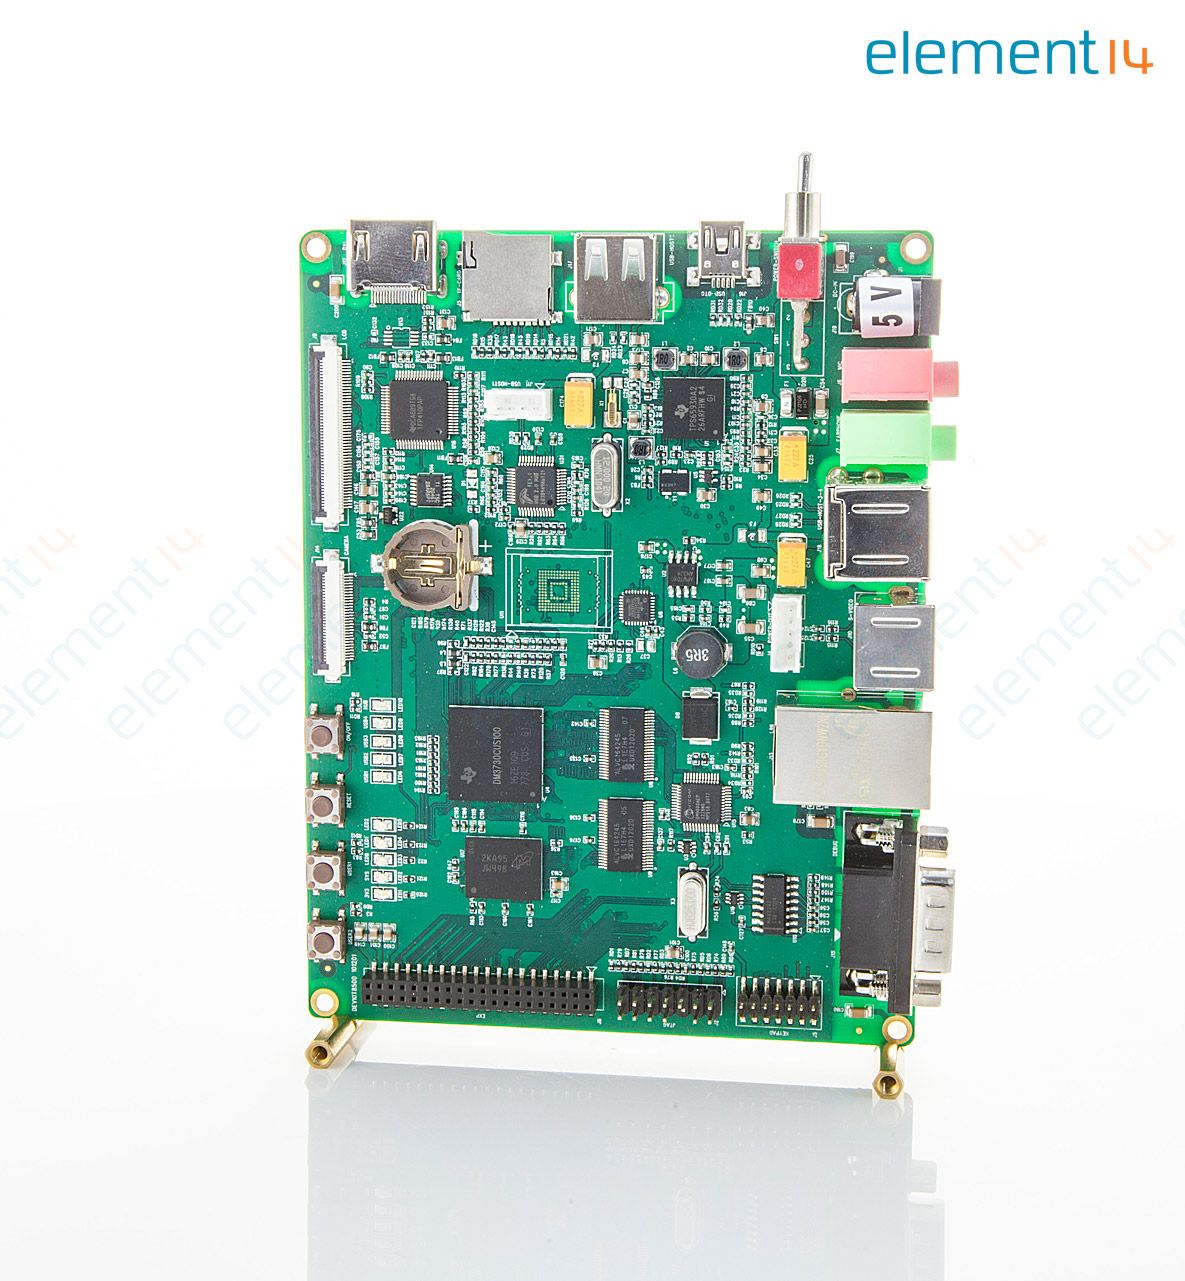 Dm3730 Evk Embest Media Processor Eval Kit Electronics Learning Circuits Webonly Products Technology Richmedia 9400b En